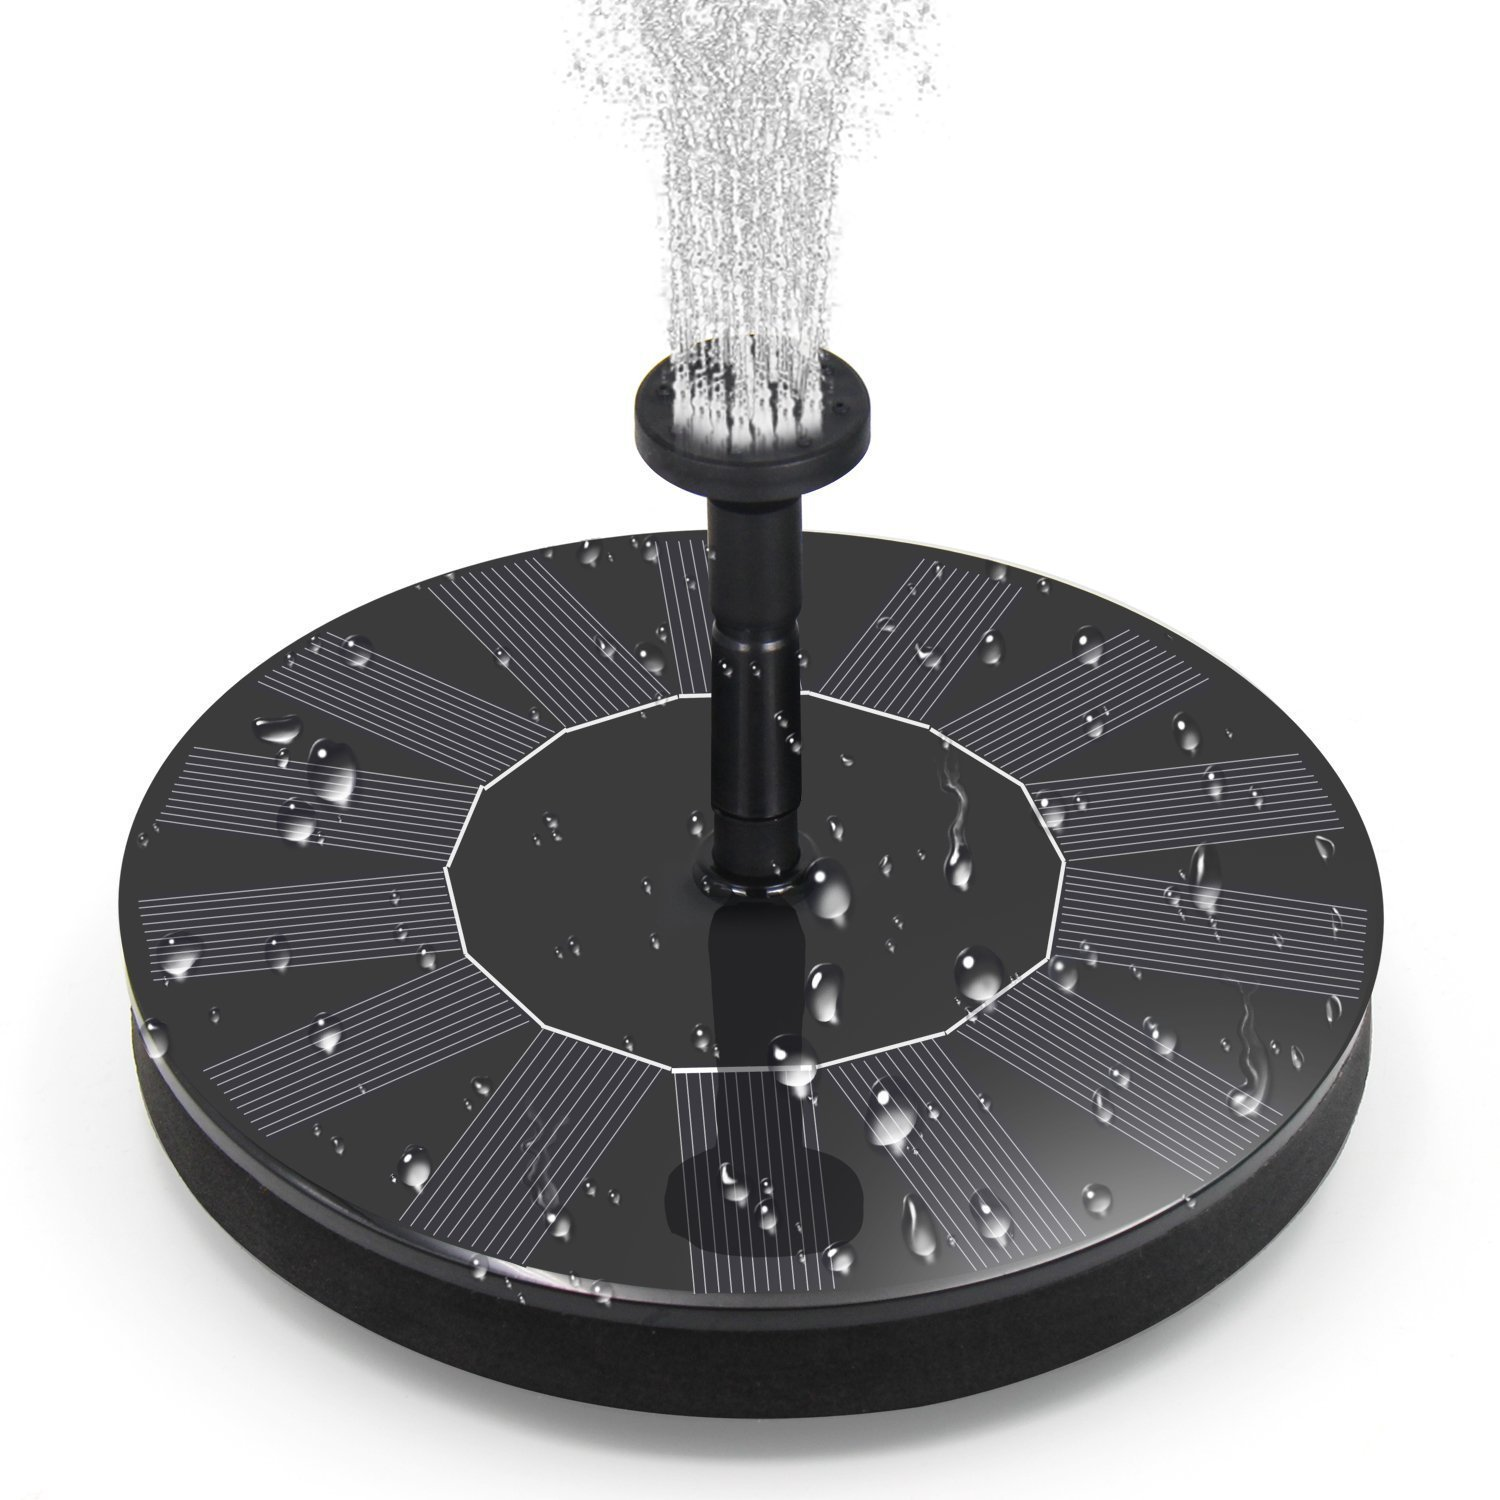 BOBOO Solar Fountain Pump,Free Standing Solar Powered Bird Bath Fountain Water Pump,1.4W Solar Outdoor Floating Fountain Pump Kit,for Garden, Pool, Pond, Patio Ideal Decoration (Black)